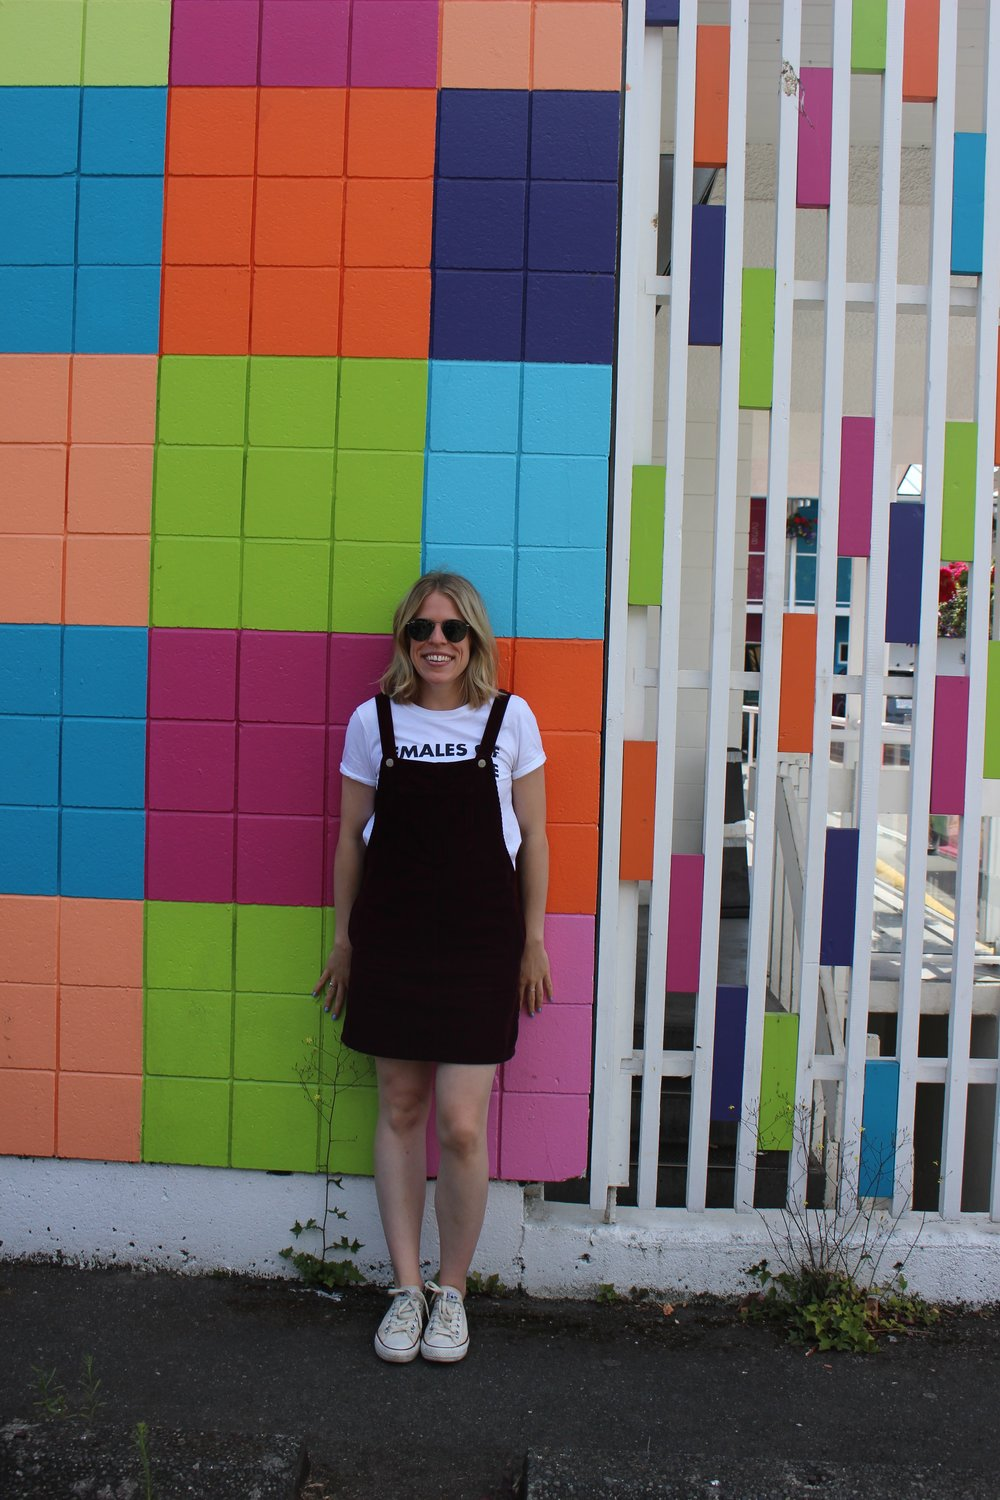 Topshop Pinafore Dress (similar   here  ), Topshop Graphic Tee (similar   here  ),   Converse   sneakers,   Ray Ban   sunglasses